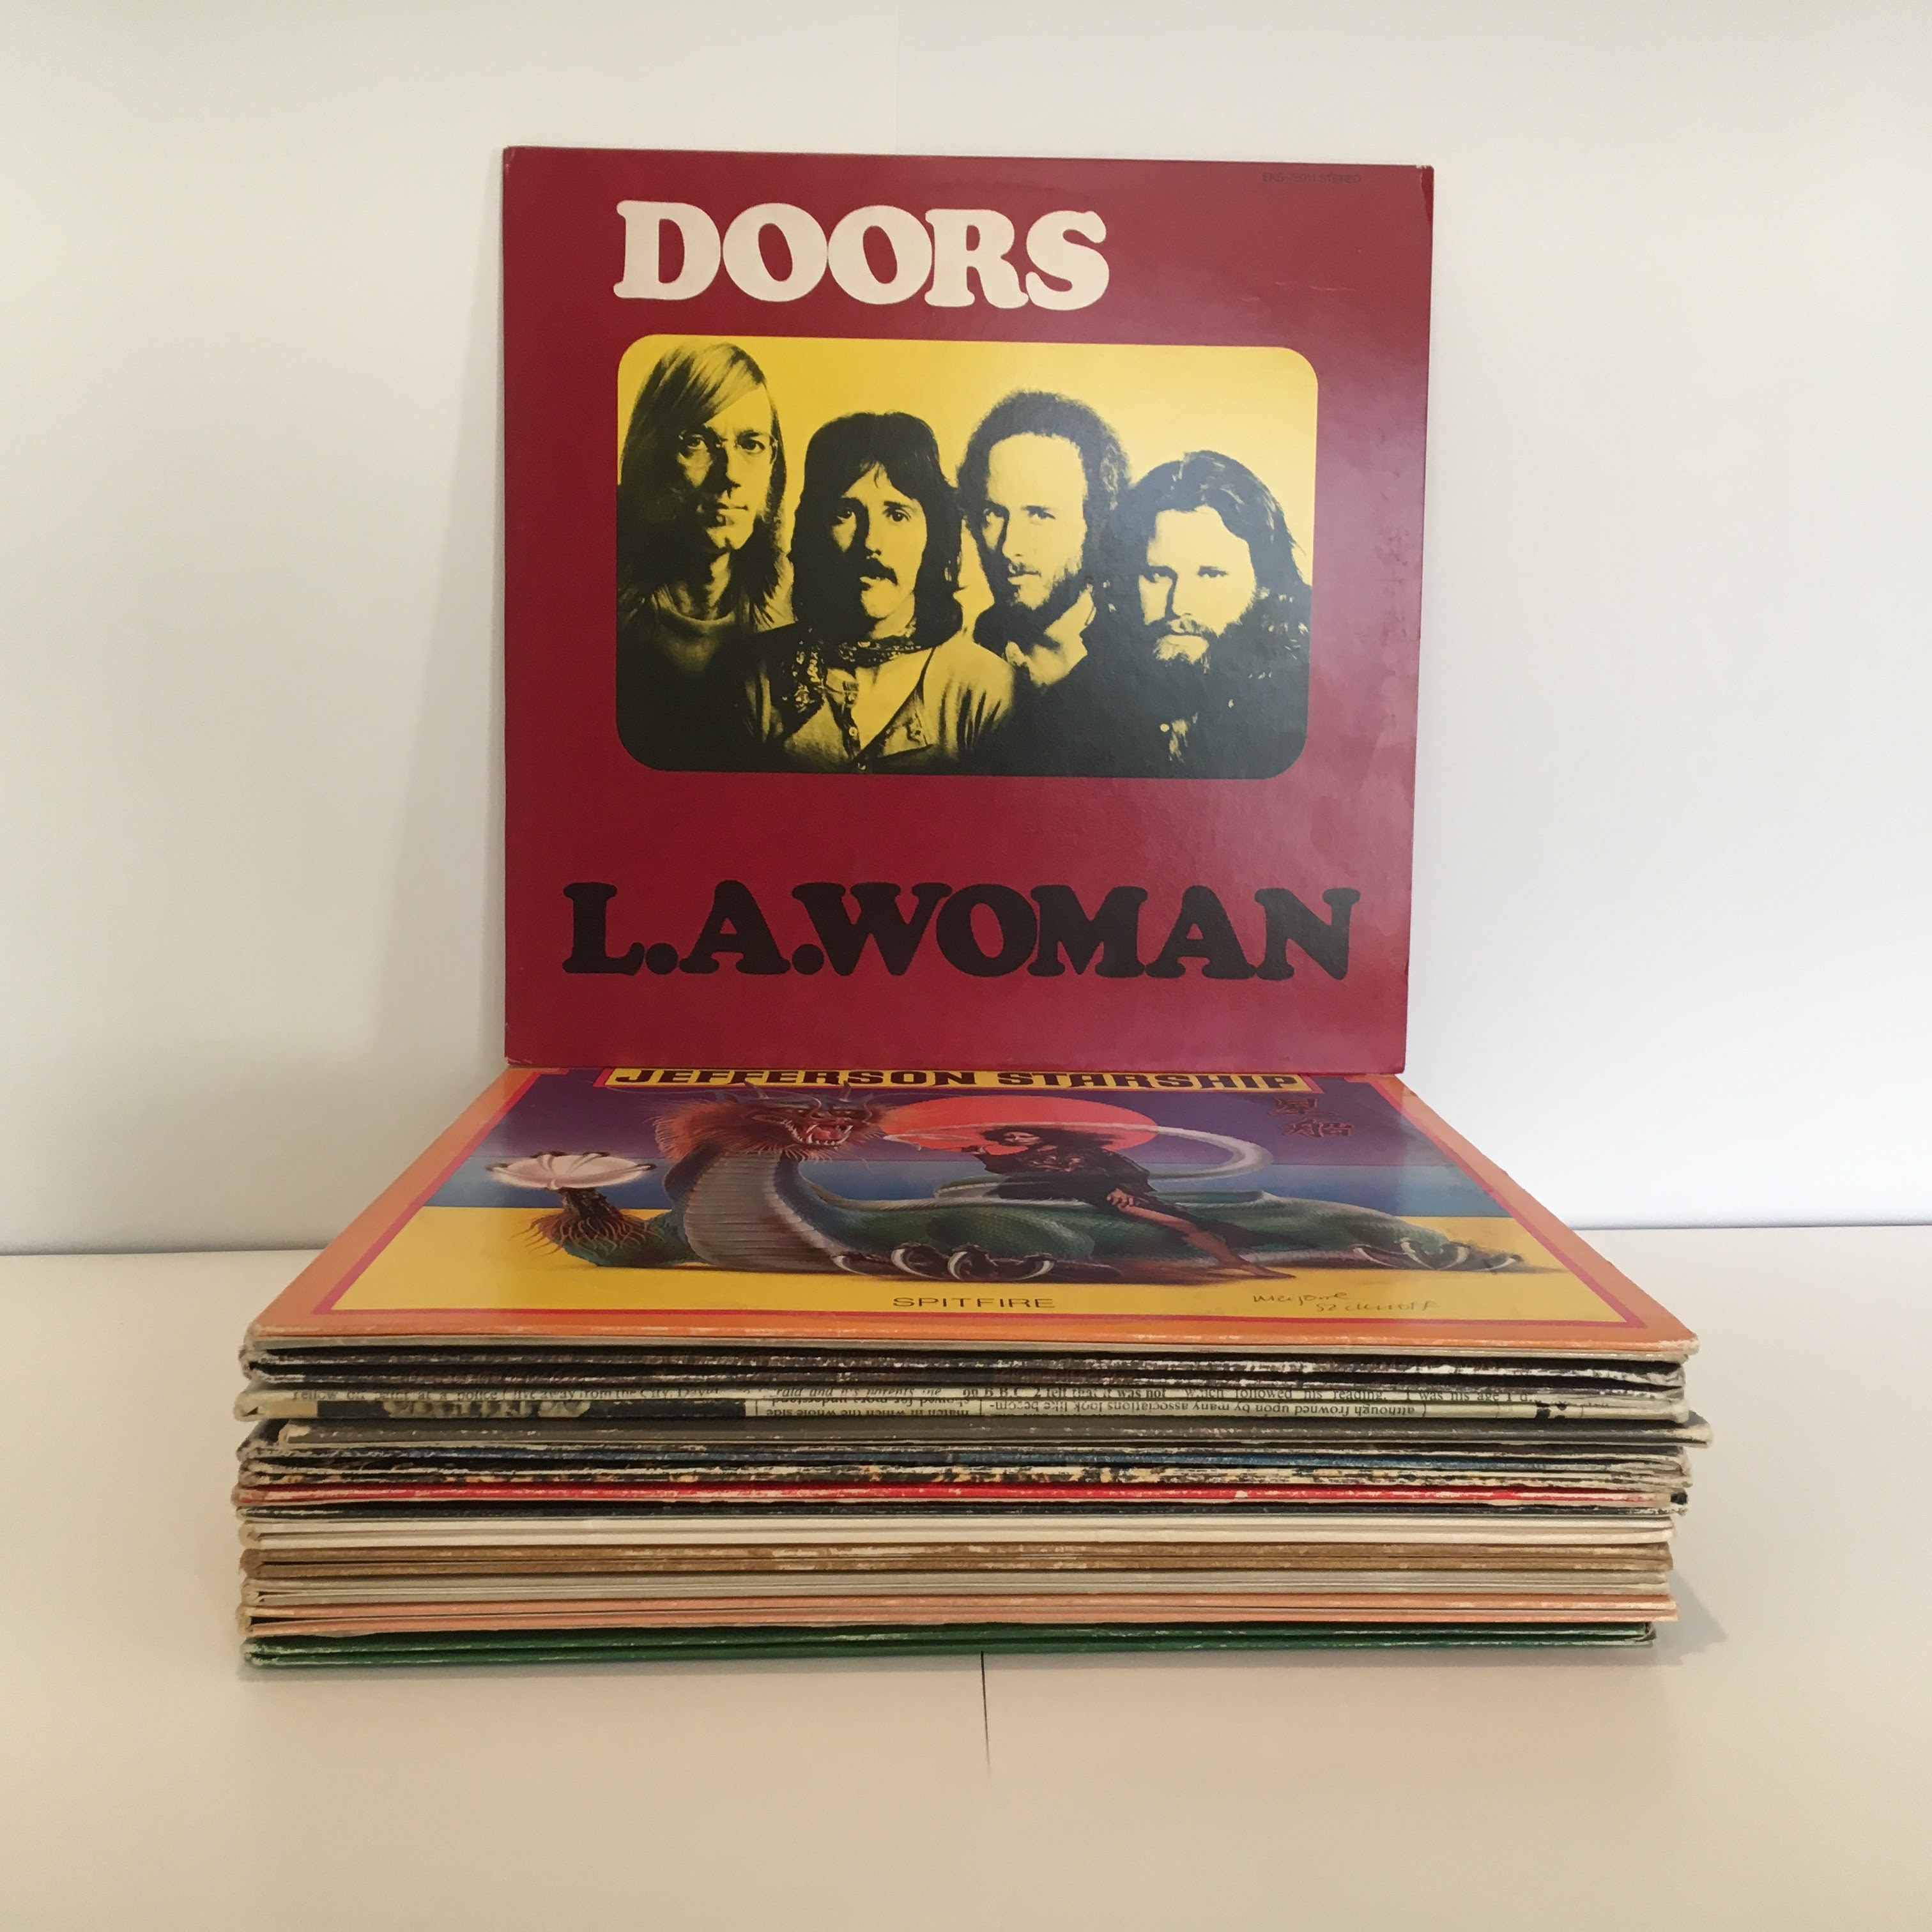 16 Vintage Classic Rock LP's including The Doors, Jefferson Starship, and More